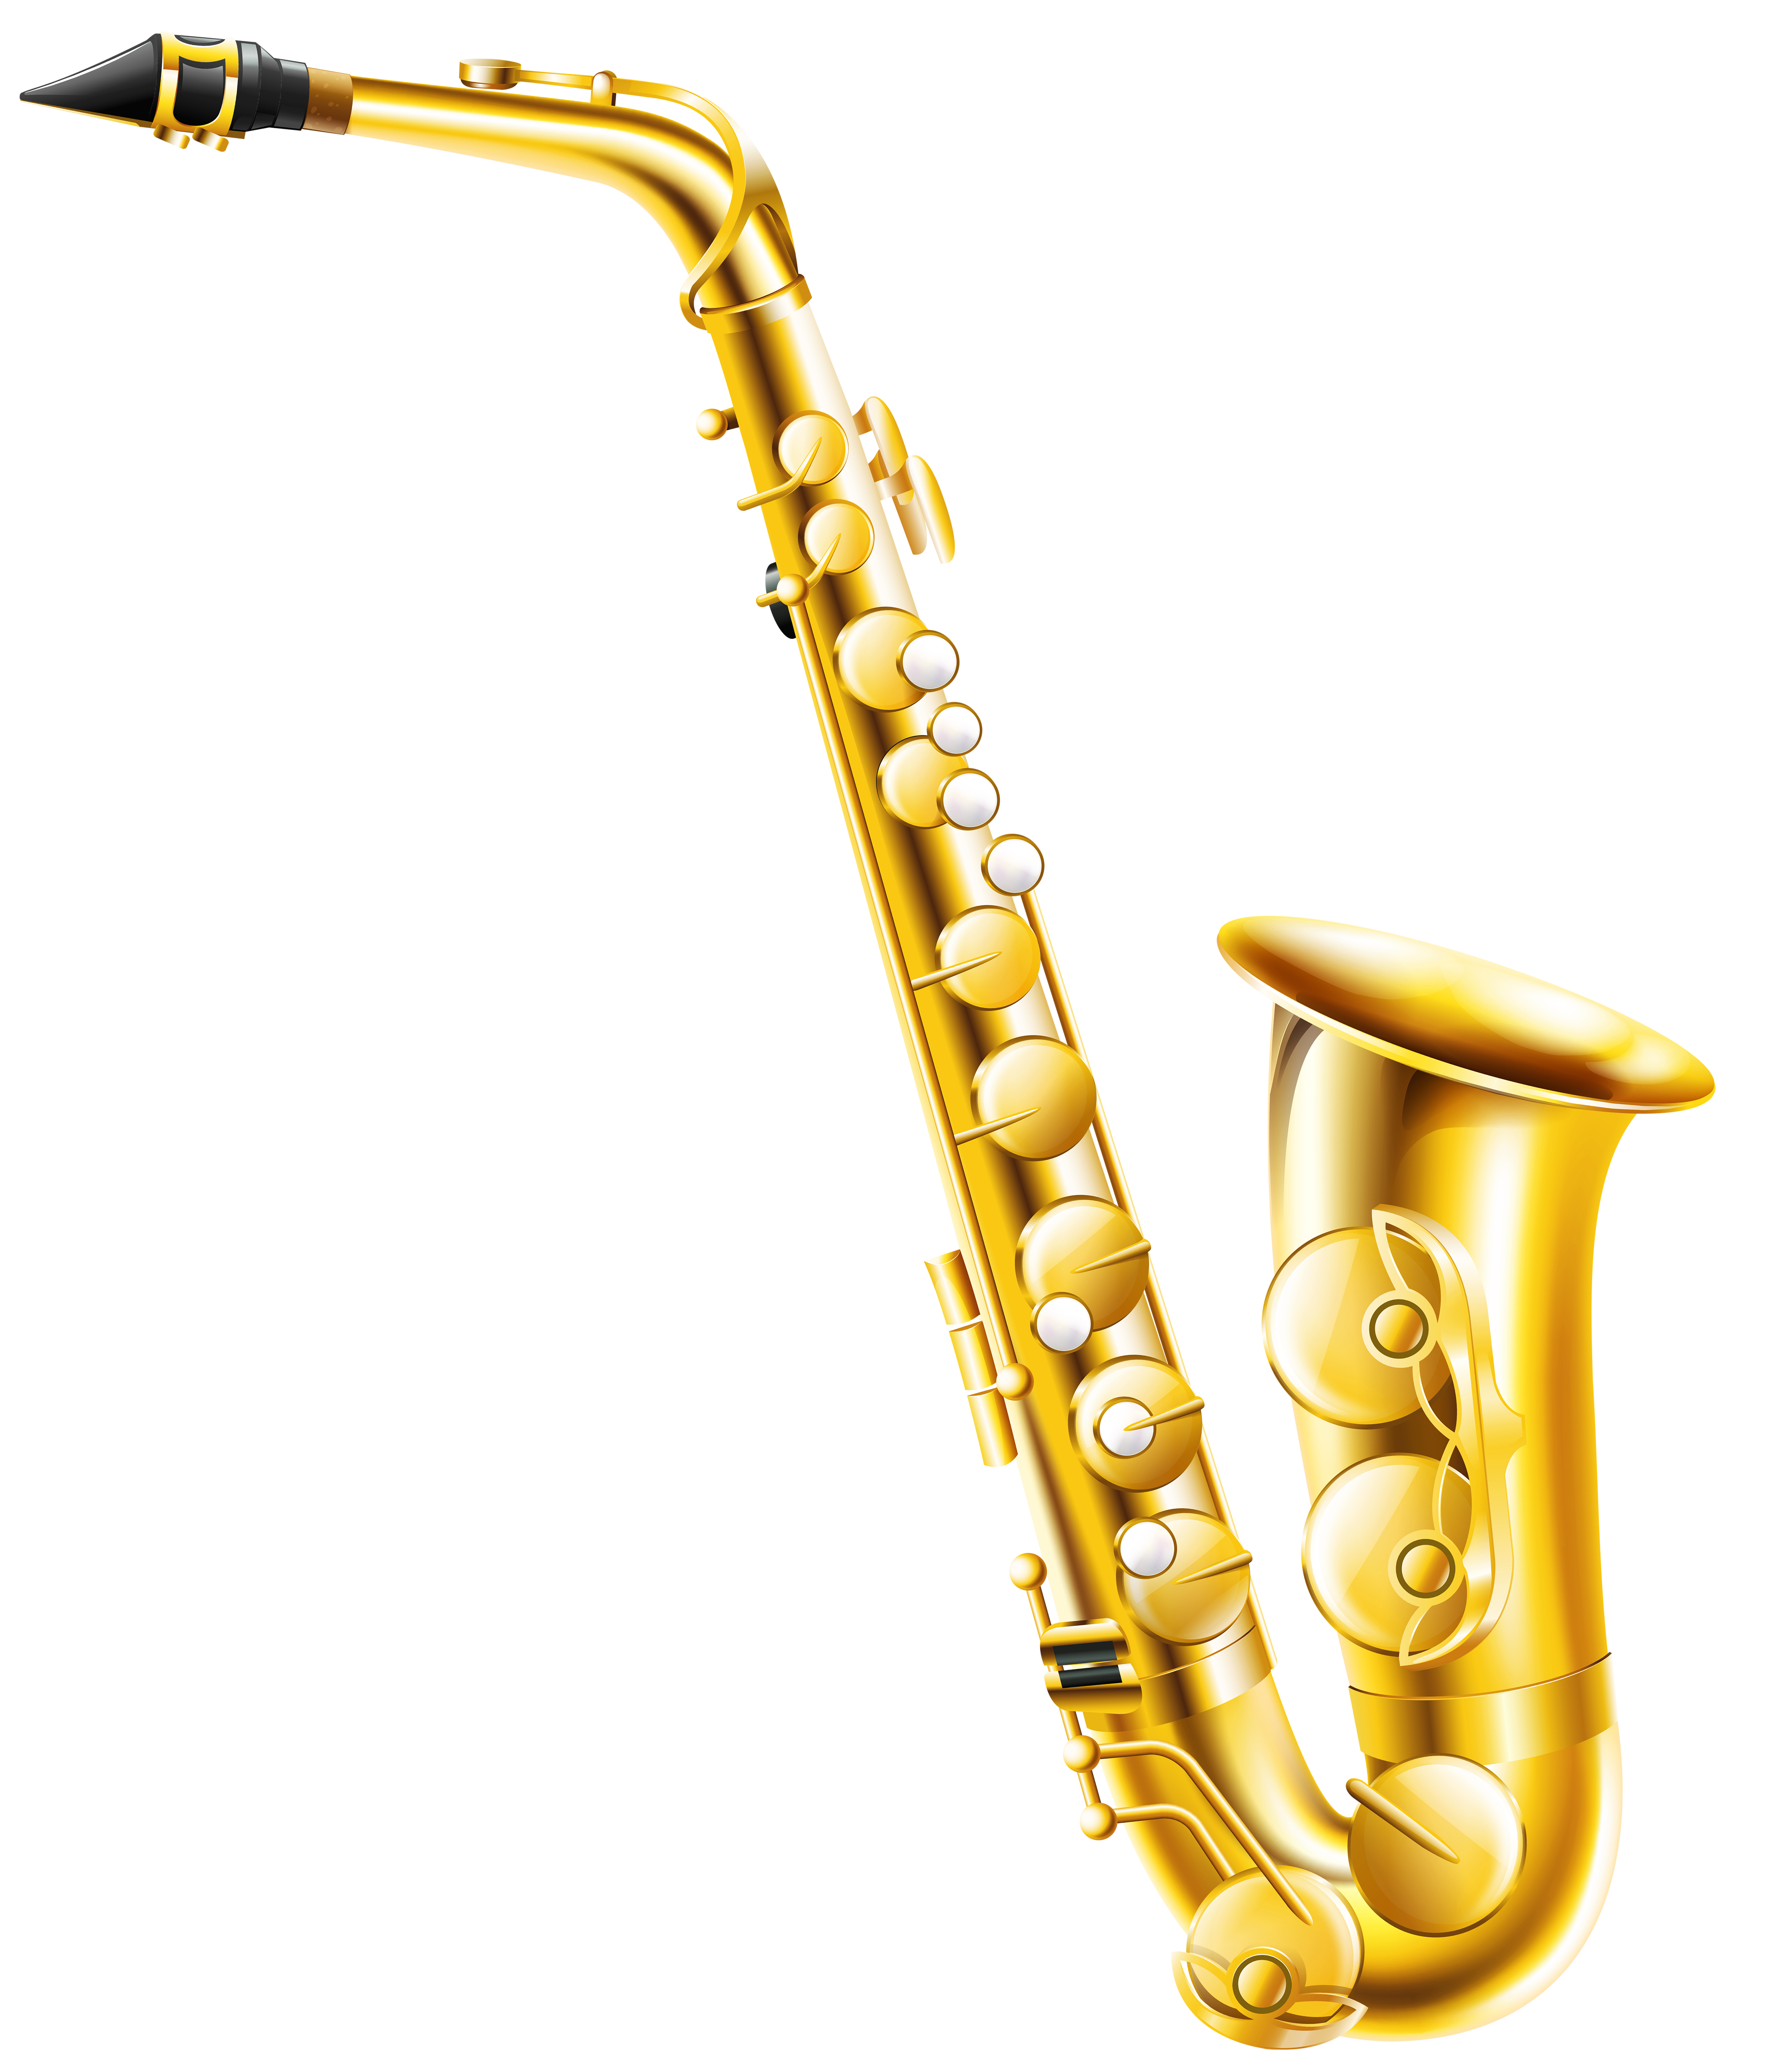 Saxofono clipart svg free Transparent Saxophone PNG Clipart | Gallery Yopriceville ... svg free